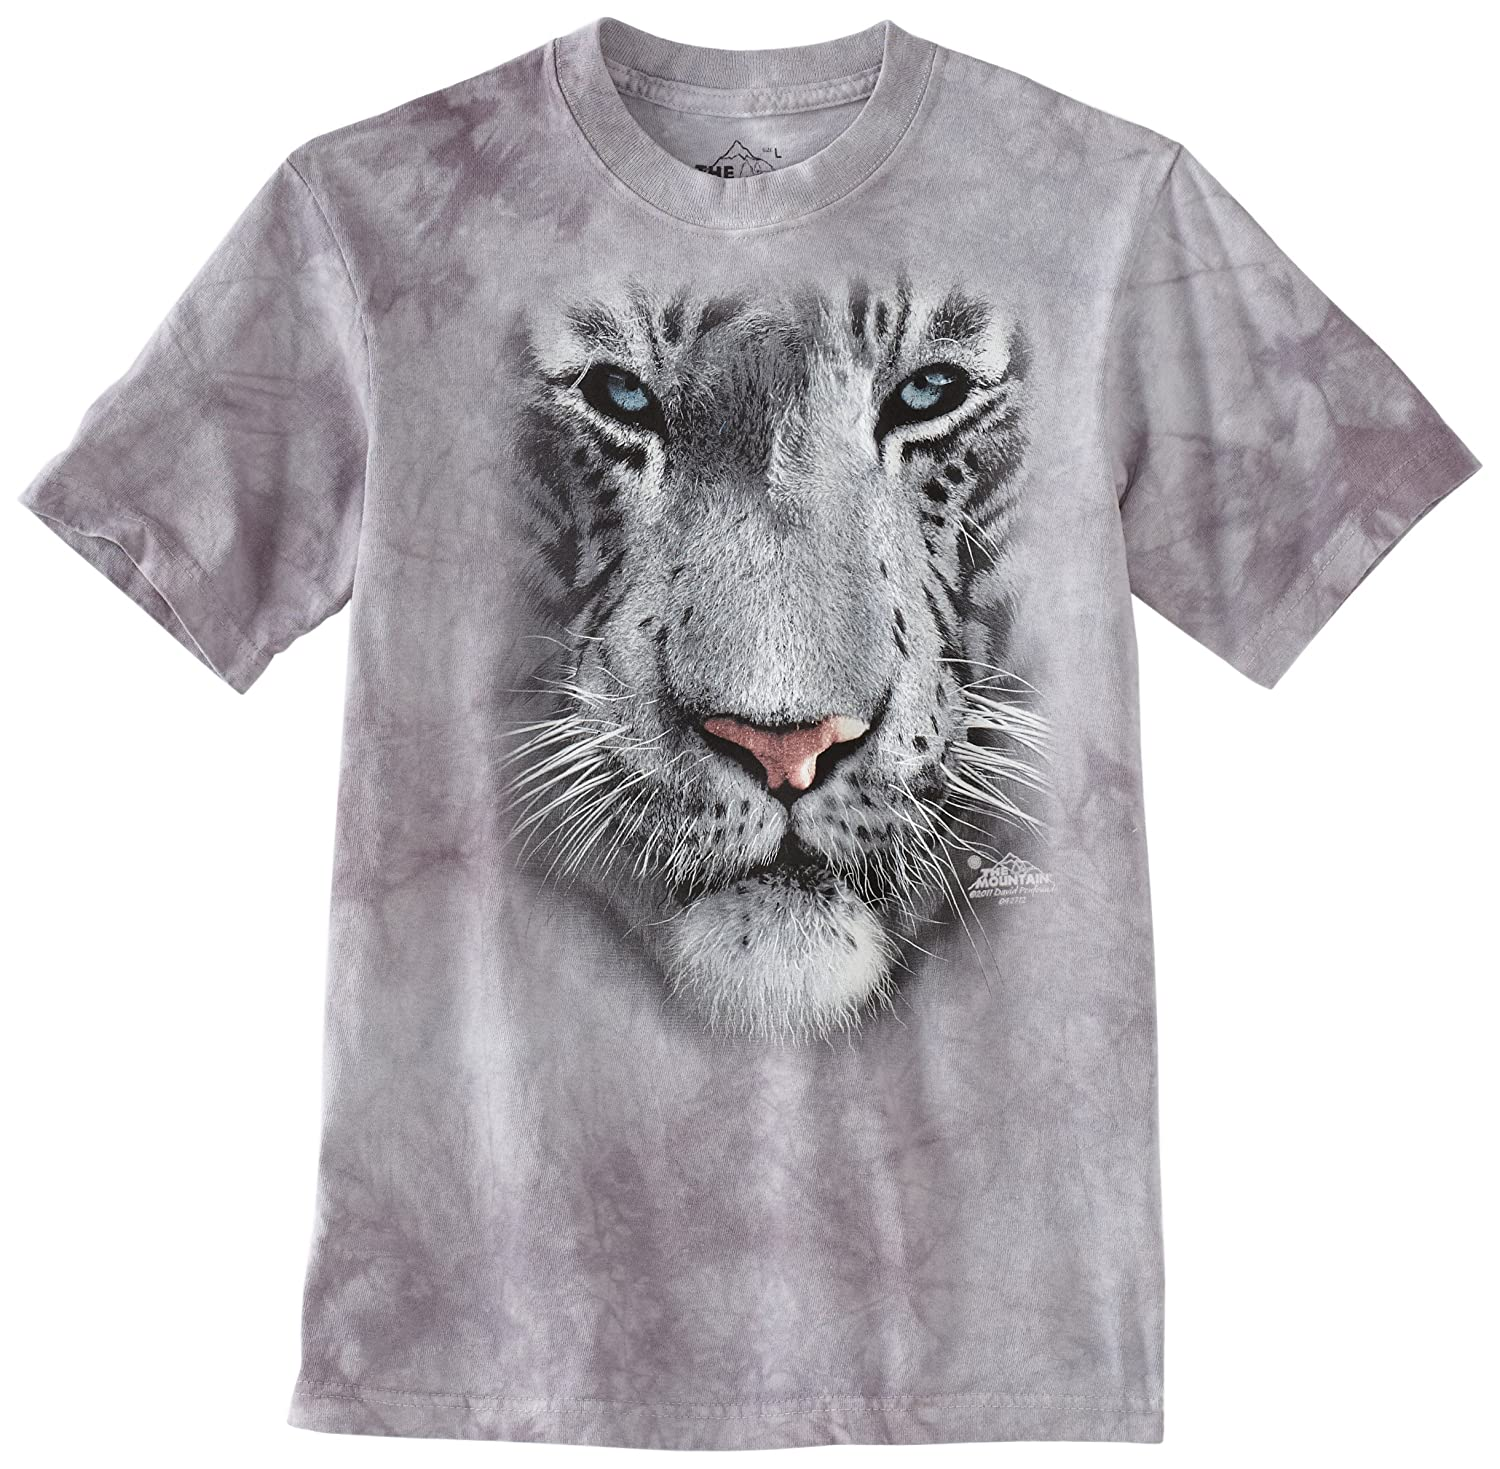 Mountain Maglietta White Tiger Face Big Cats Bambino Unisex The Mountain MT3252-15-P